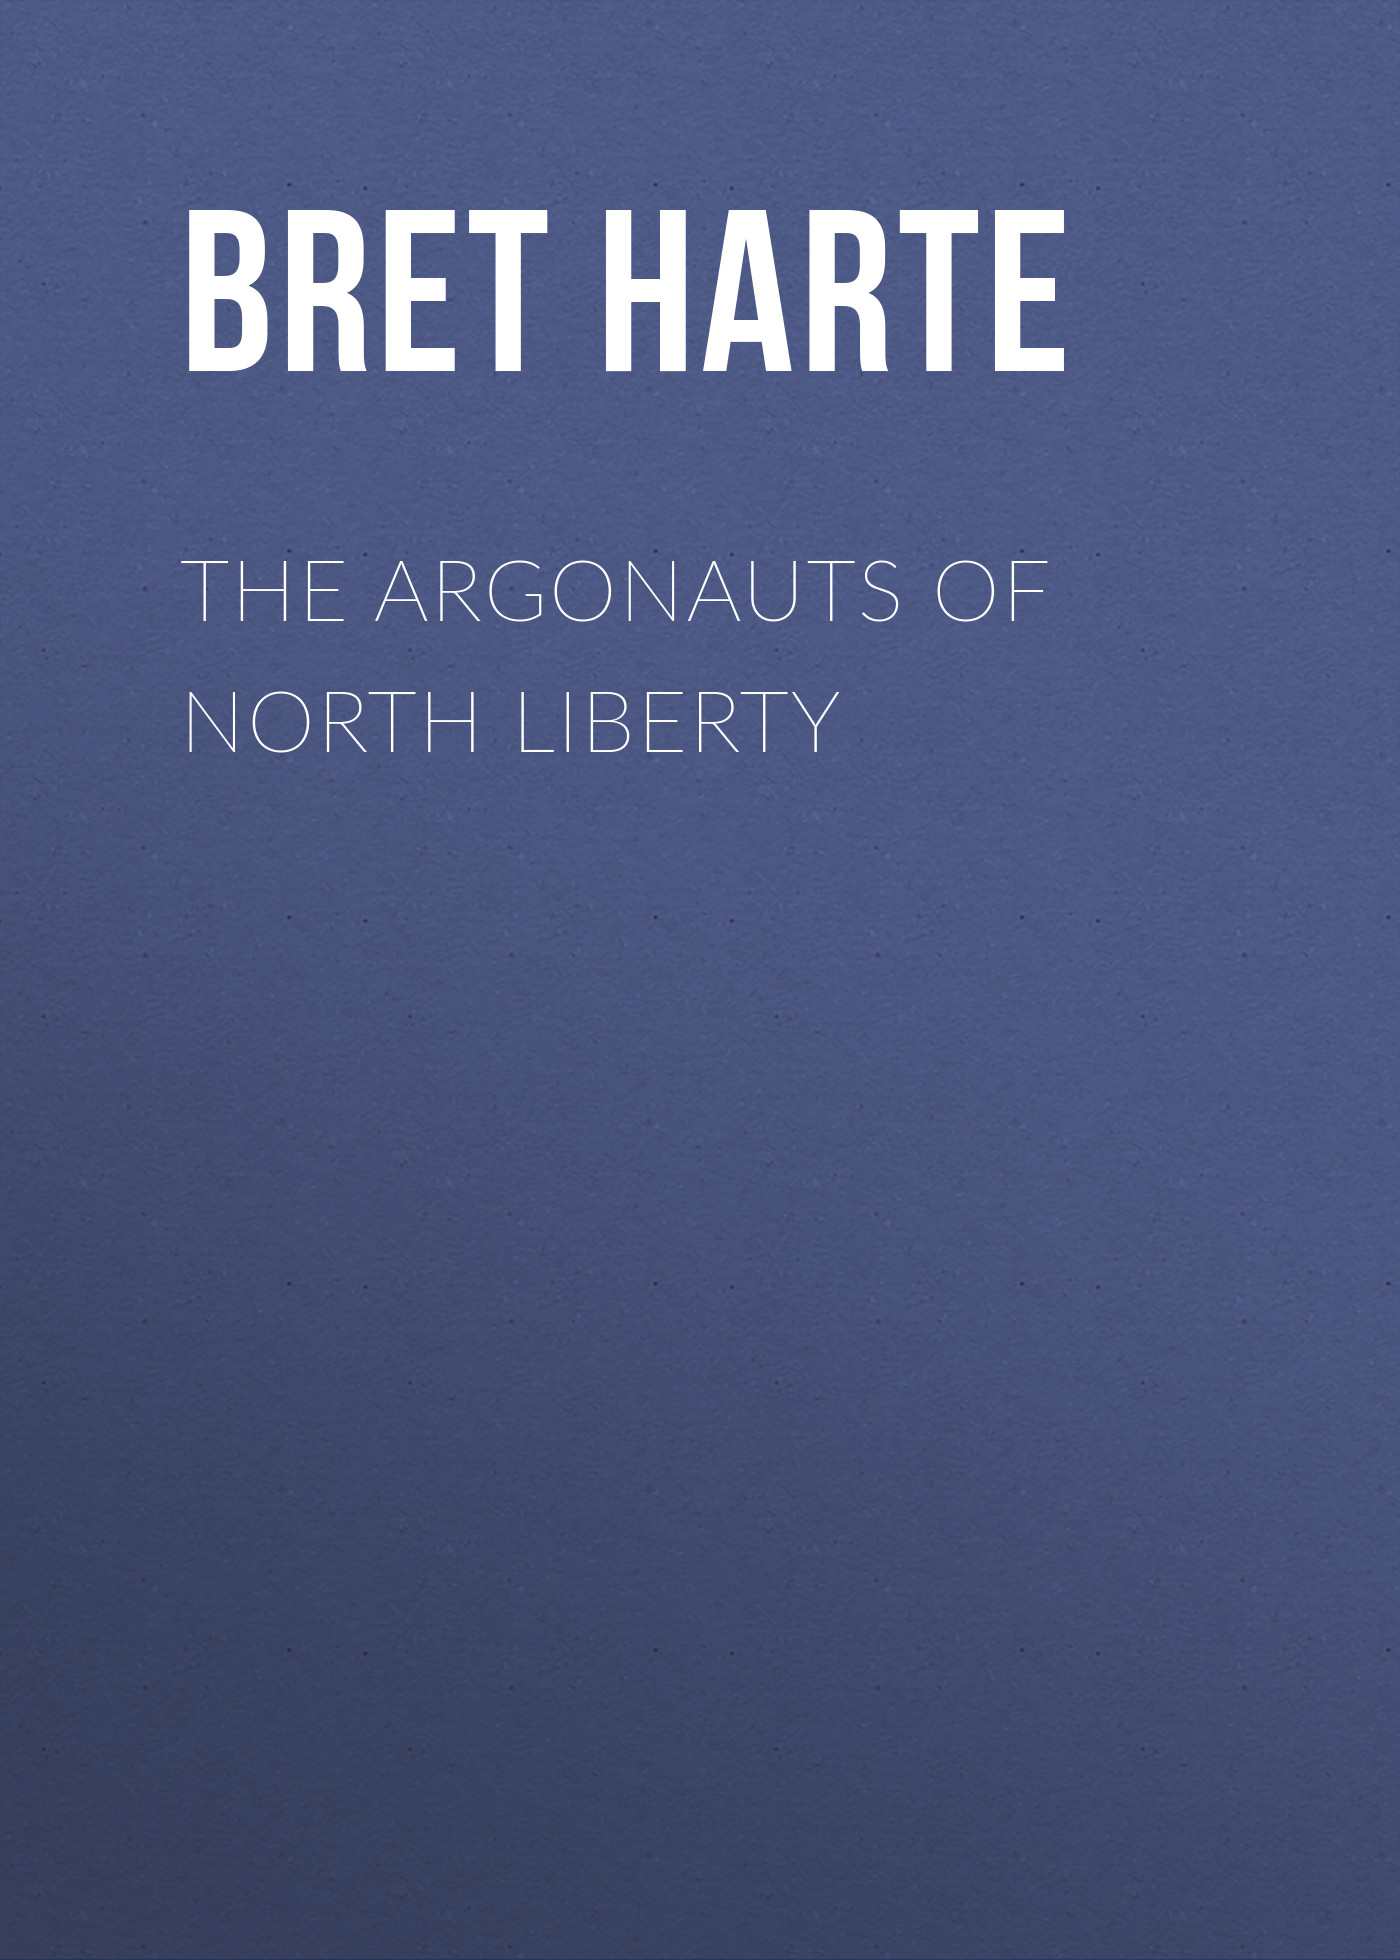 Bret Harte The Argonauts of North Liberty стоимость